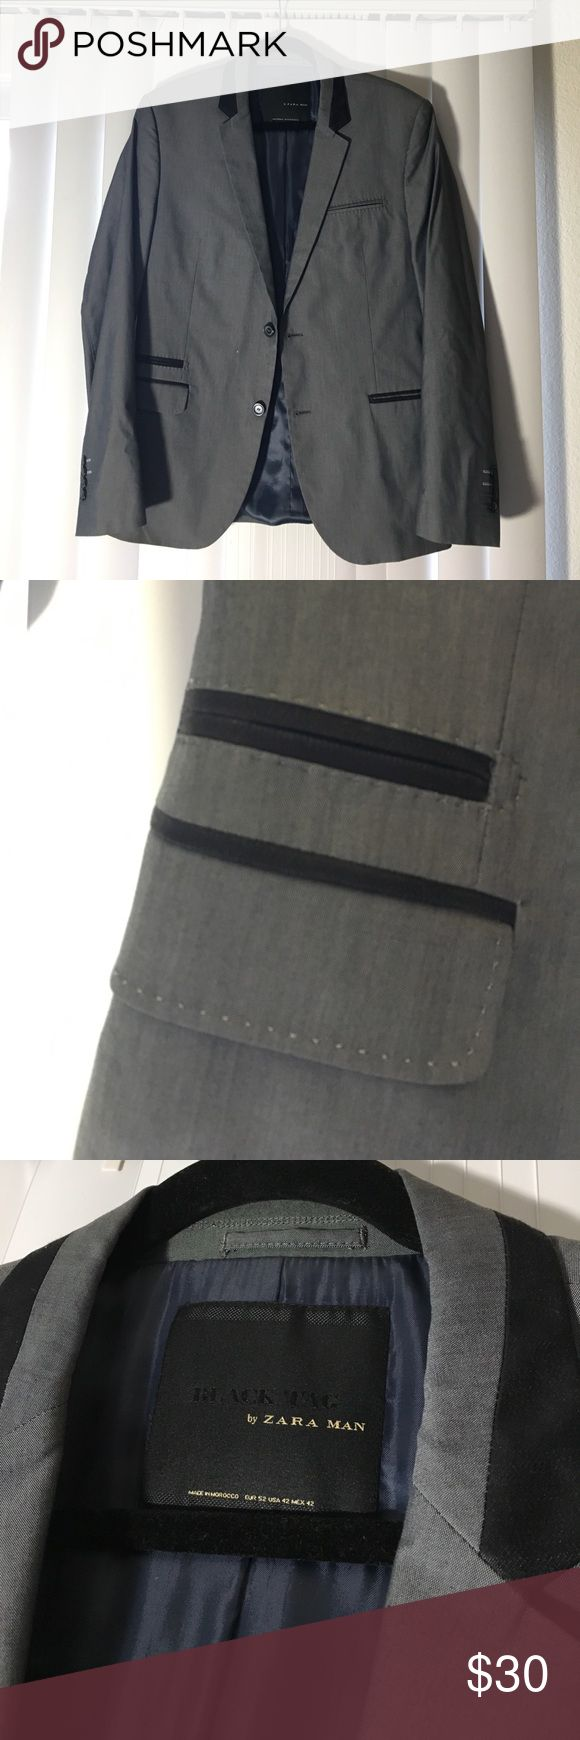 Black Tag By Zara Man Blazer - size 42 2 inner pockets. 27 in long arms from shoulder to wrist end. 18in wide back. 29in long. Zara Suits & Blazers Sport Coats & Blazers